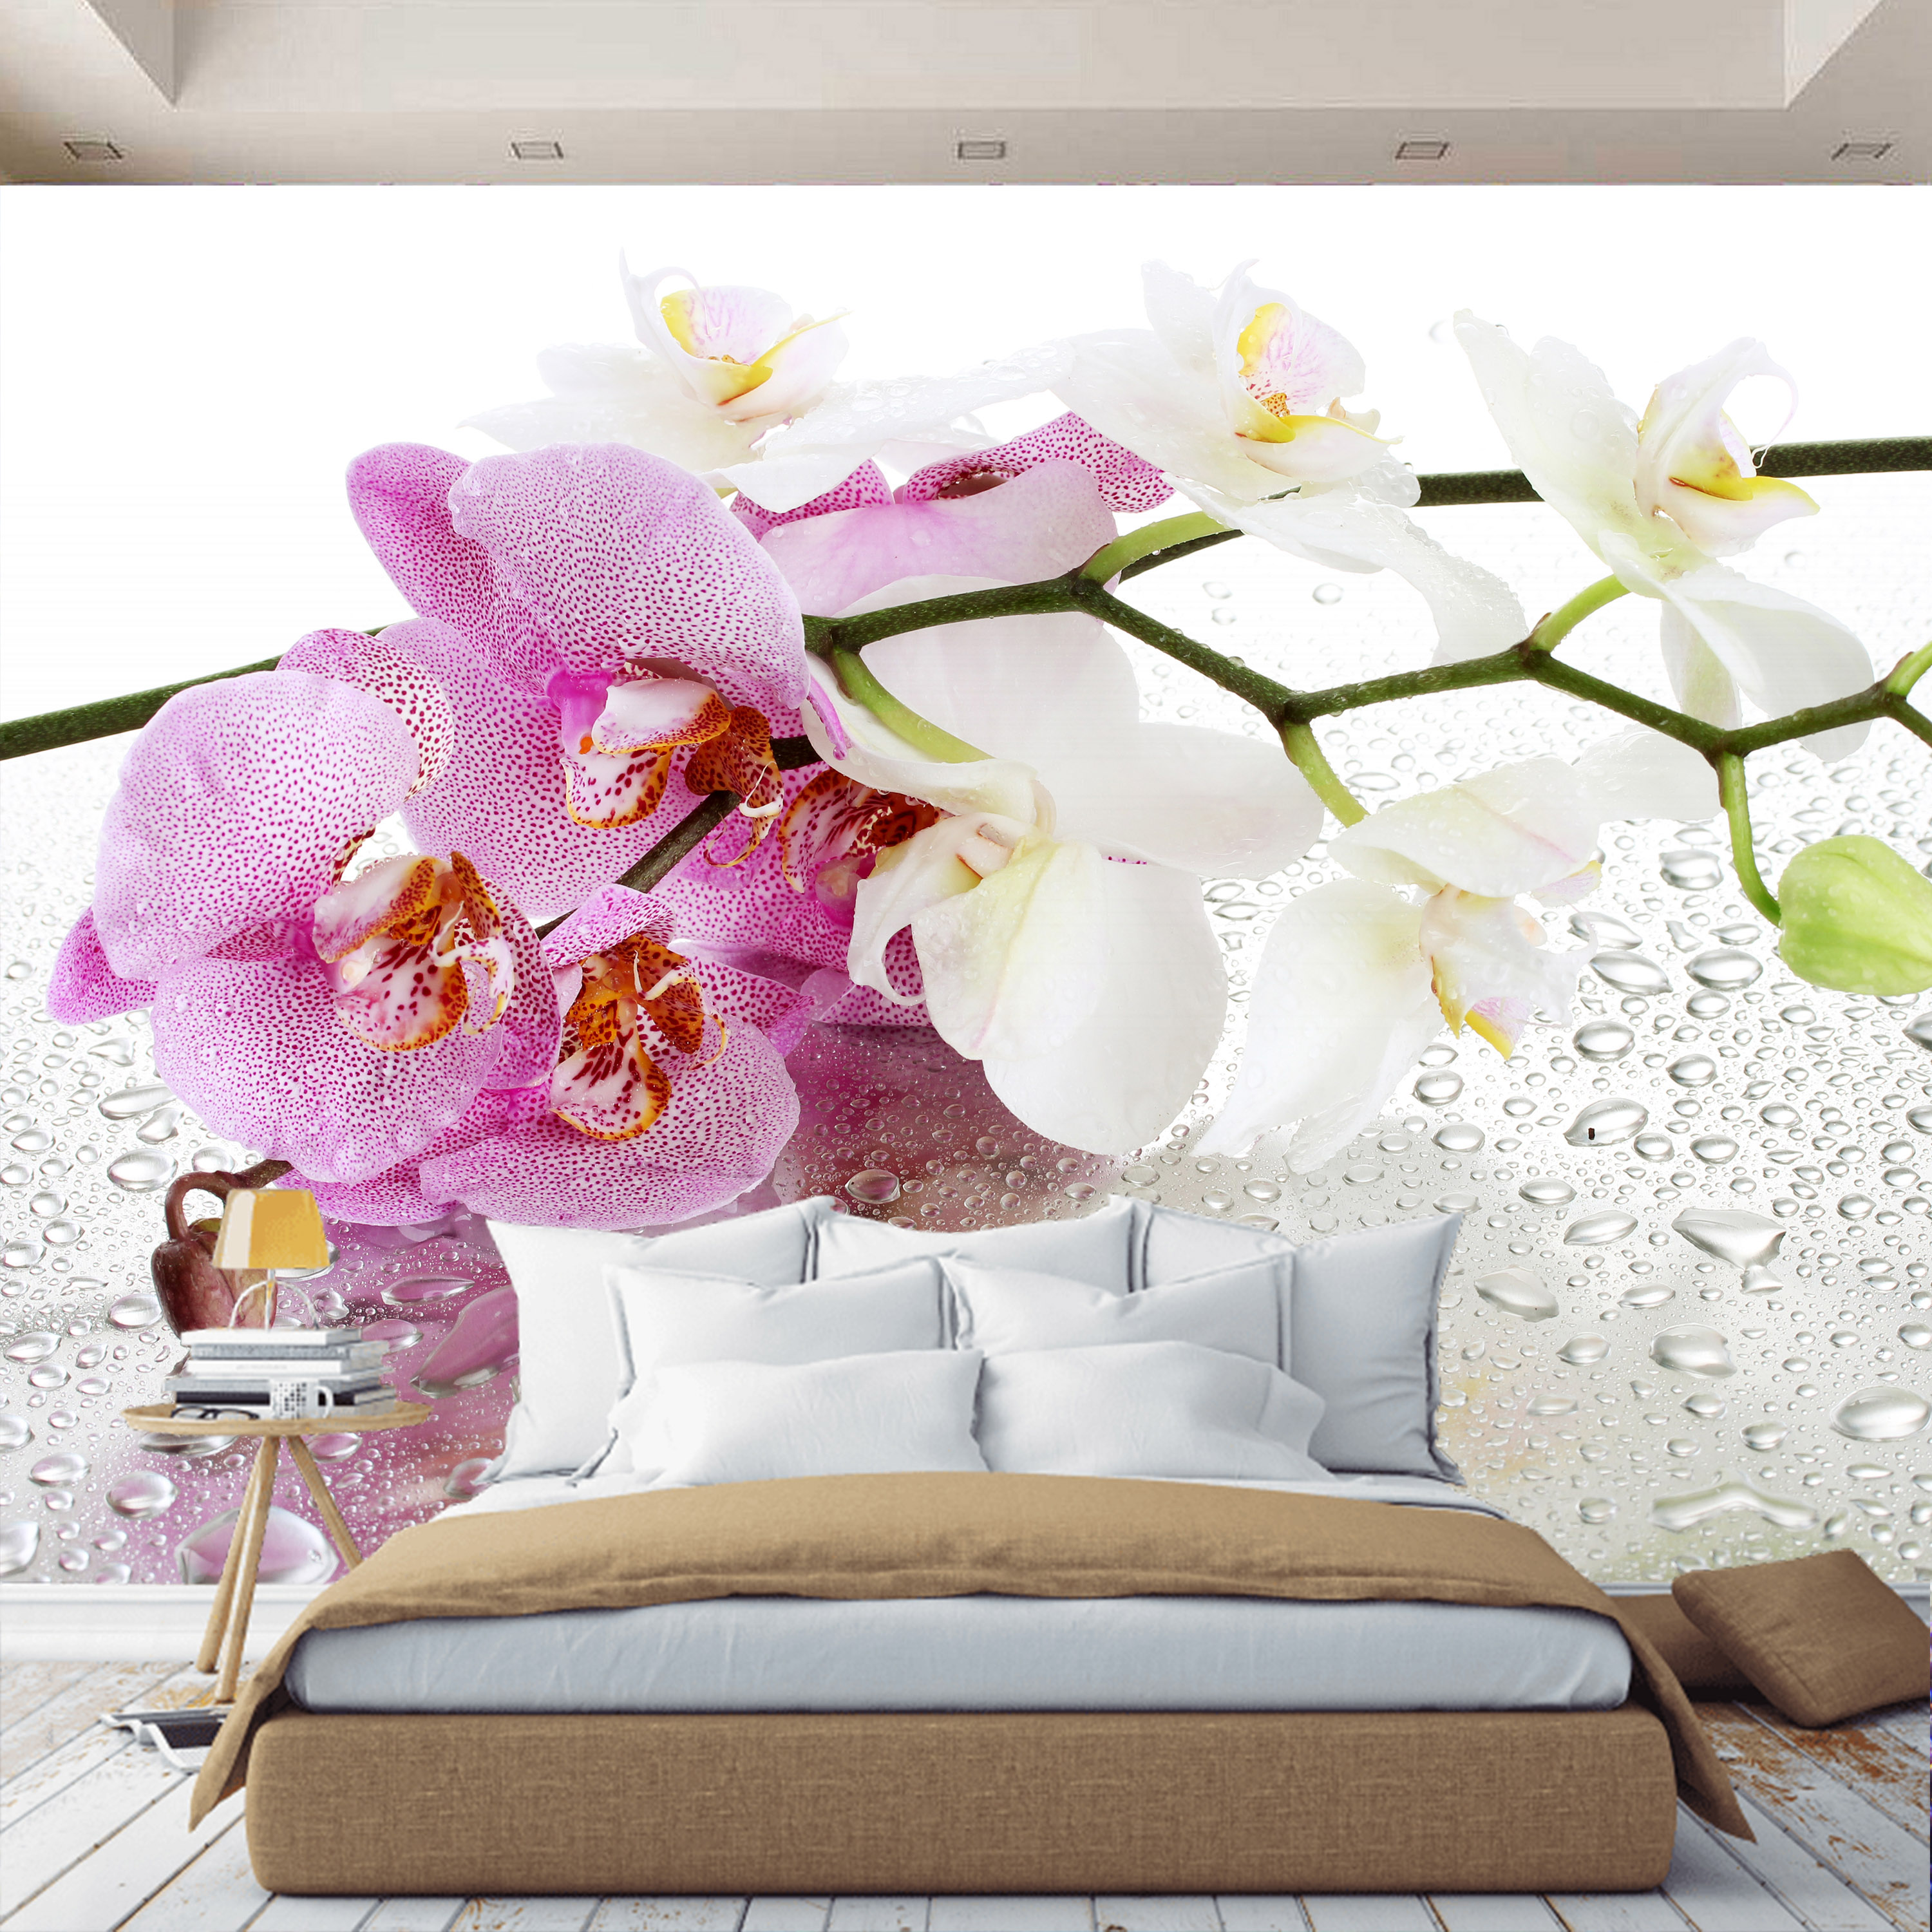 3D Wall Mural Wallpaper Orchid Flowers, Custom Wallpaper, For Hall, Kitchen, Bedroom, Children's, Wall Mural Expanding Space